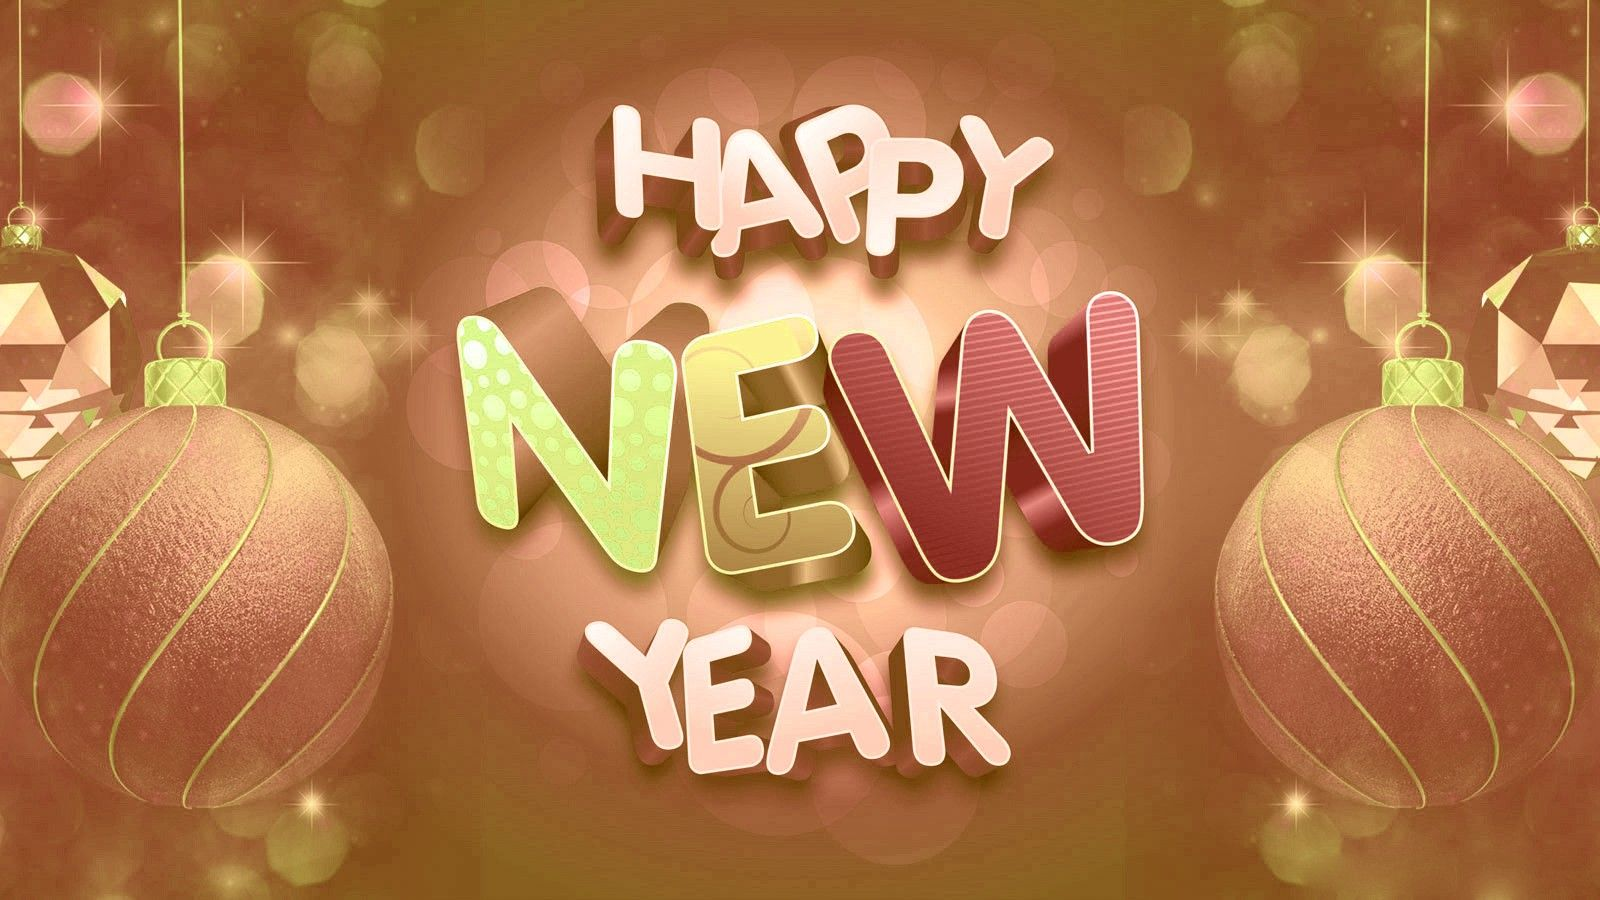 Happy New Year 2020 Wallpapers - Top Free Happy New Year 2020